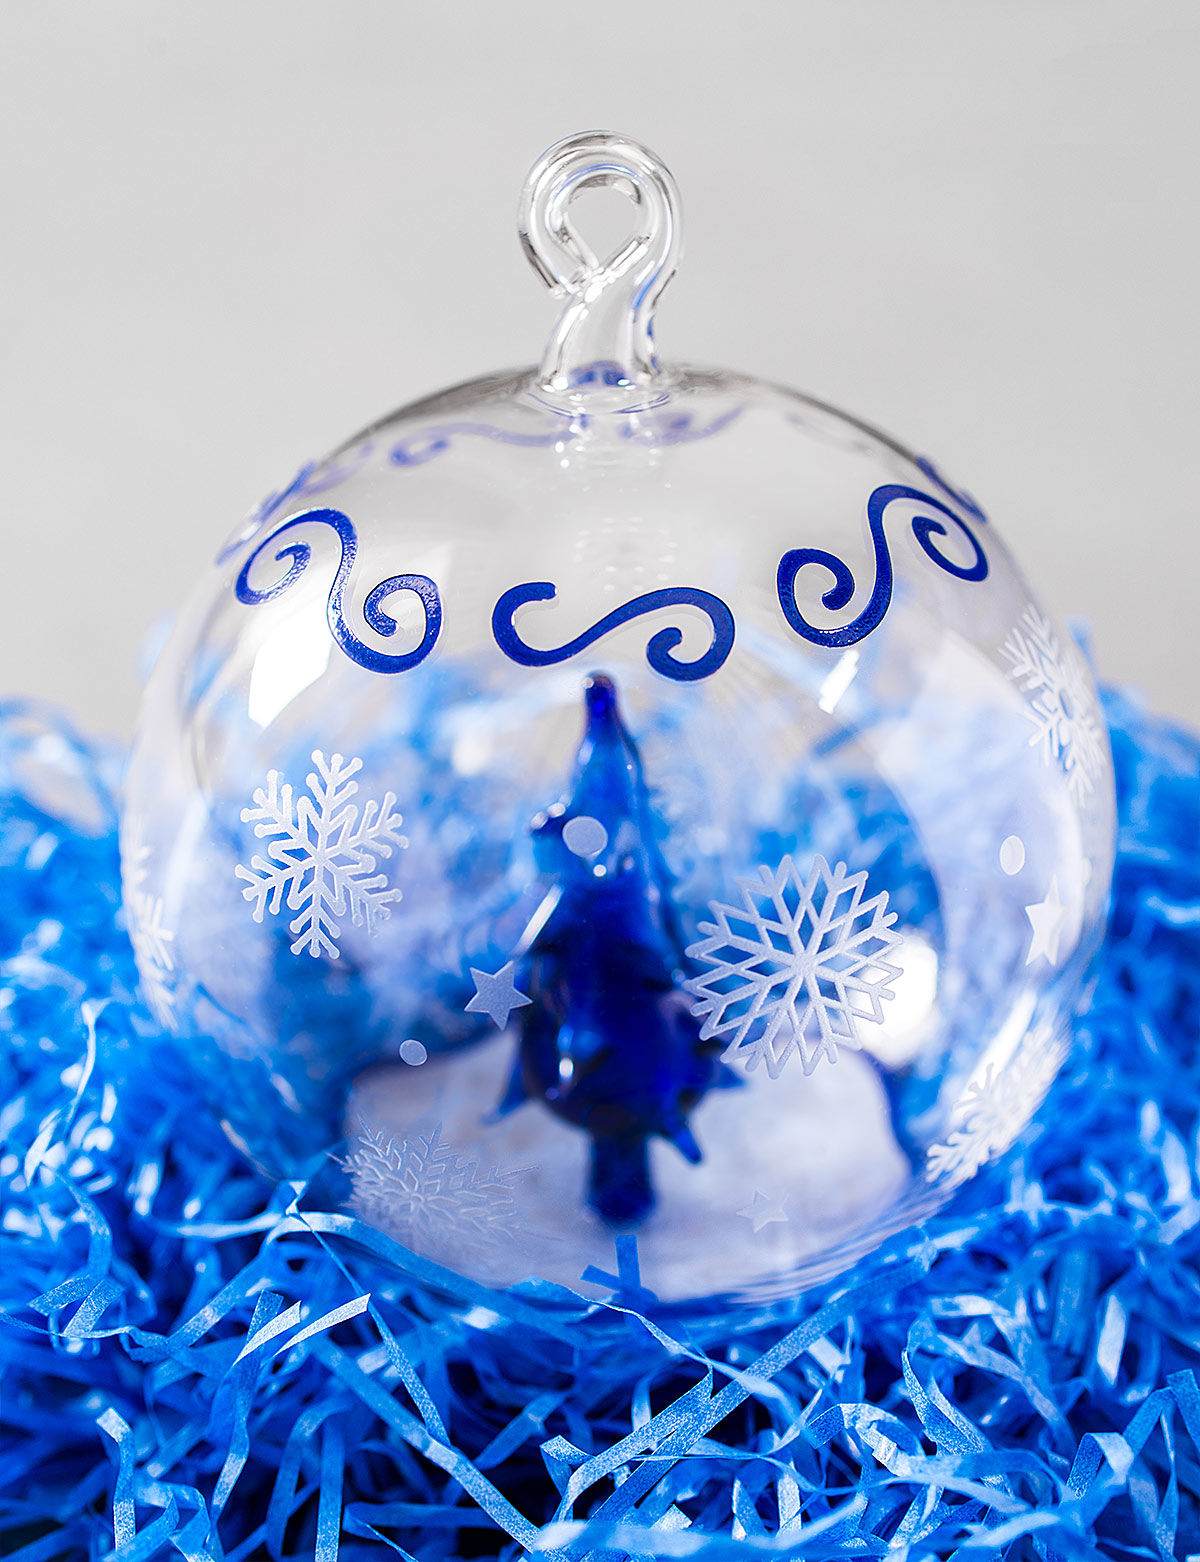 Handmade designer Christmas tree toy. Laser engraving on glass and painting on glass. New Year decorations as a gift for Altbank bank customers.